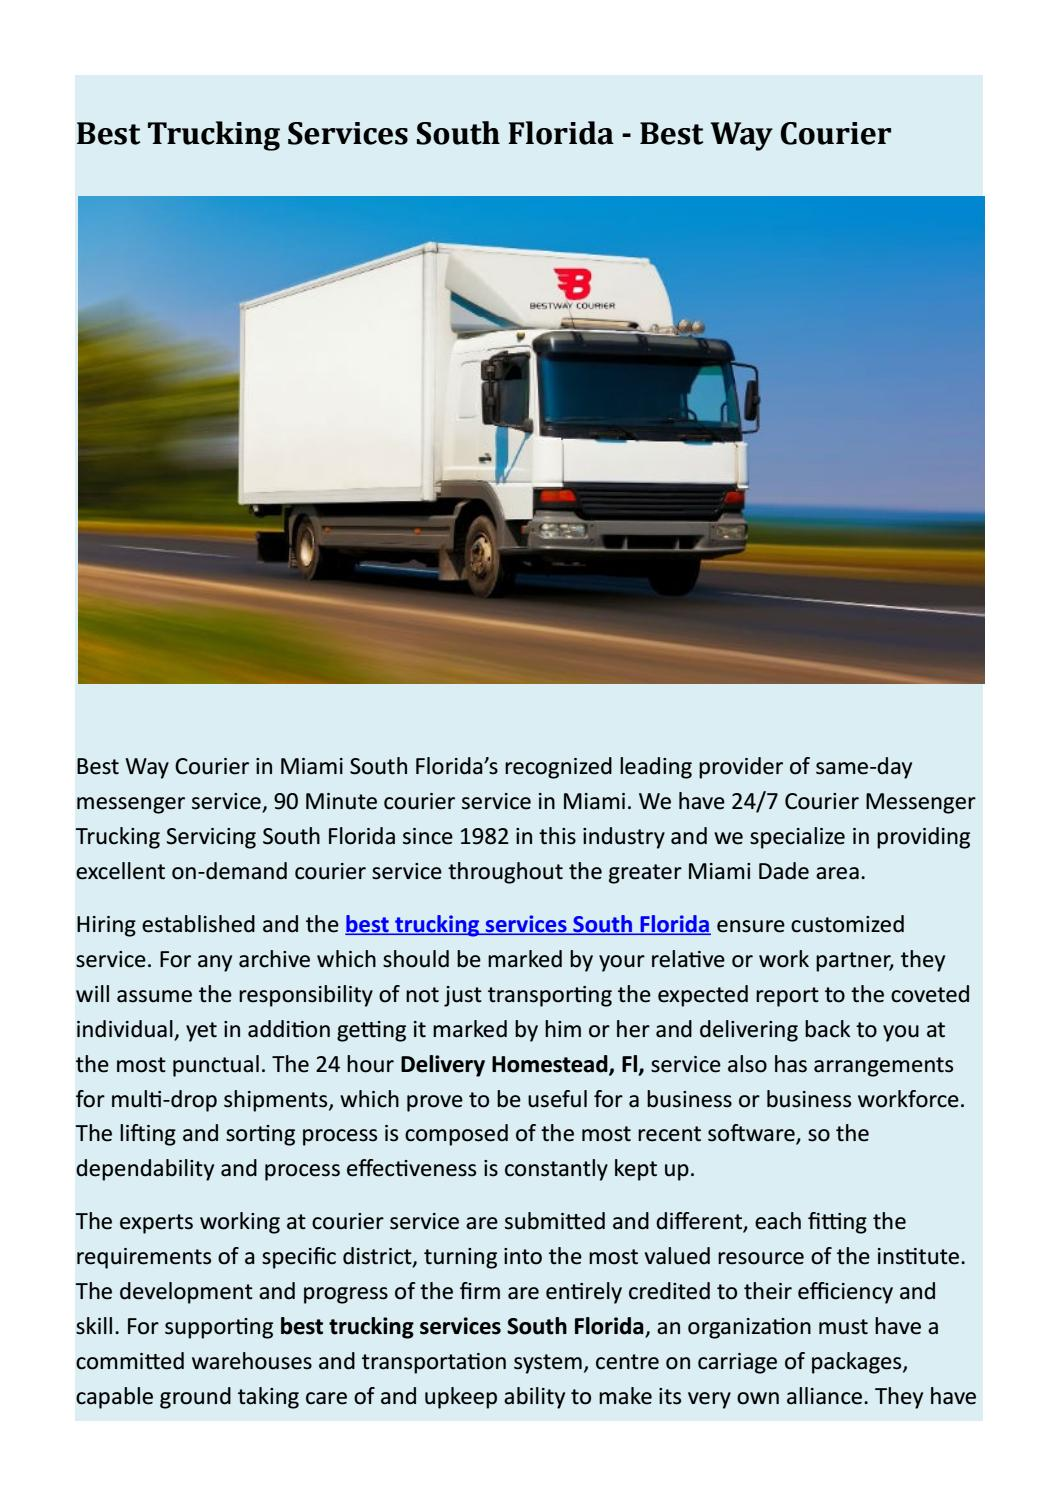 Best Trucking Services South Florida - Best Way Courier by